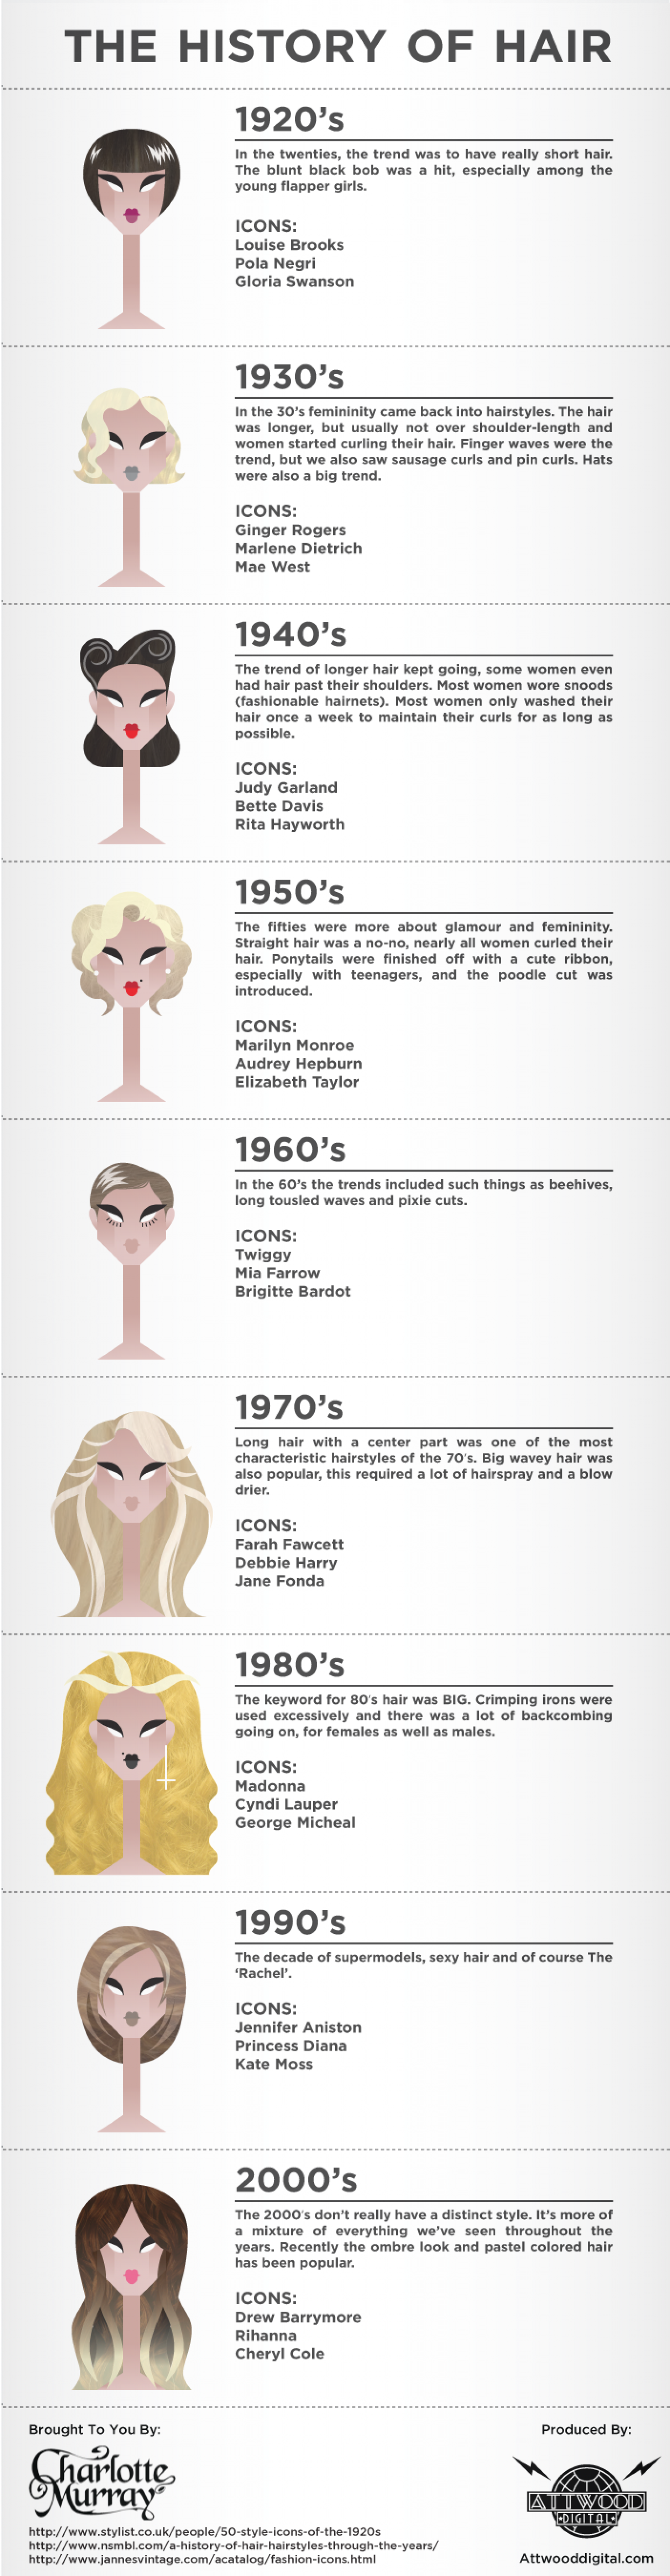 The History Of Hair Infographic